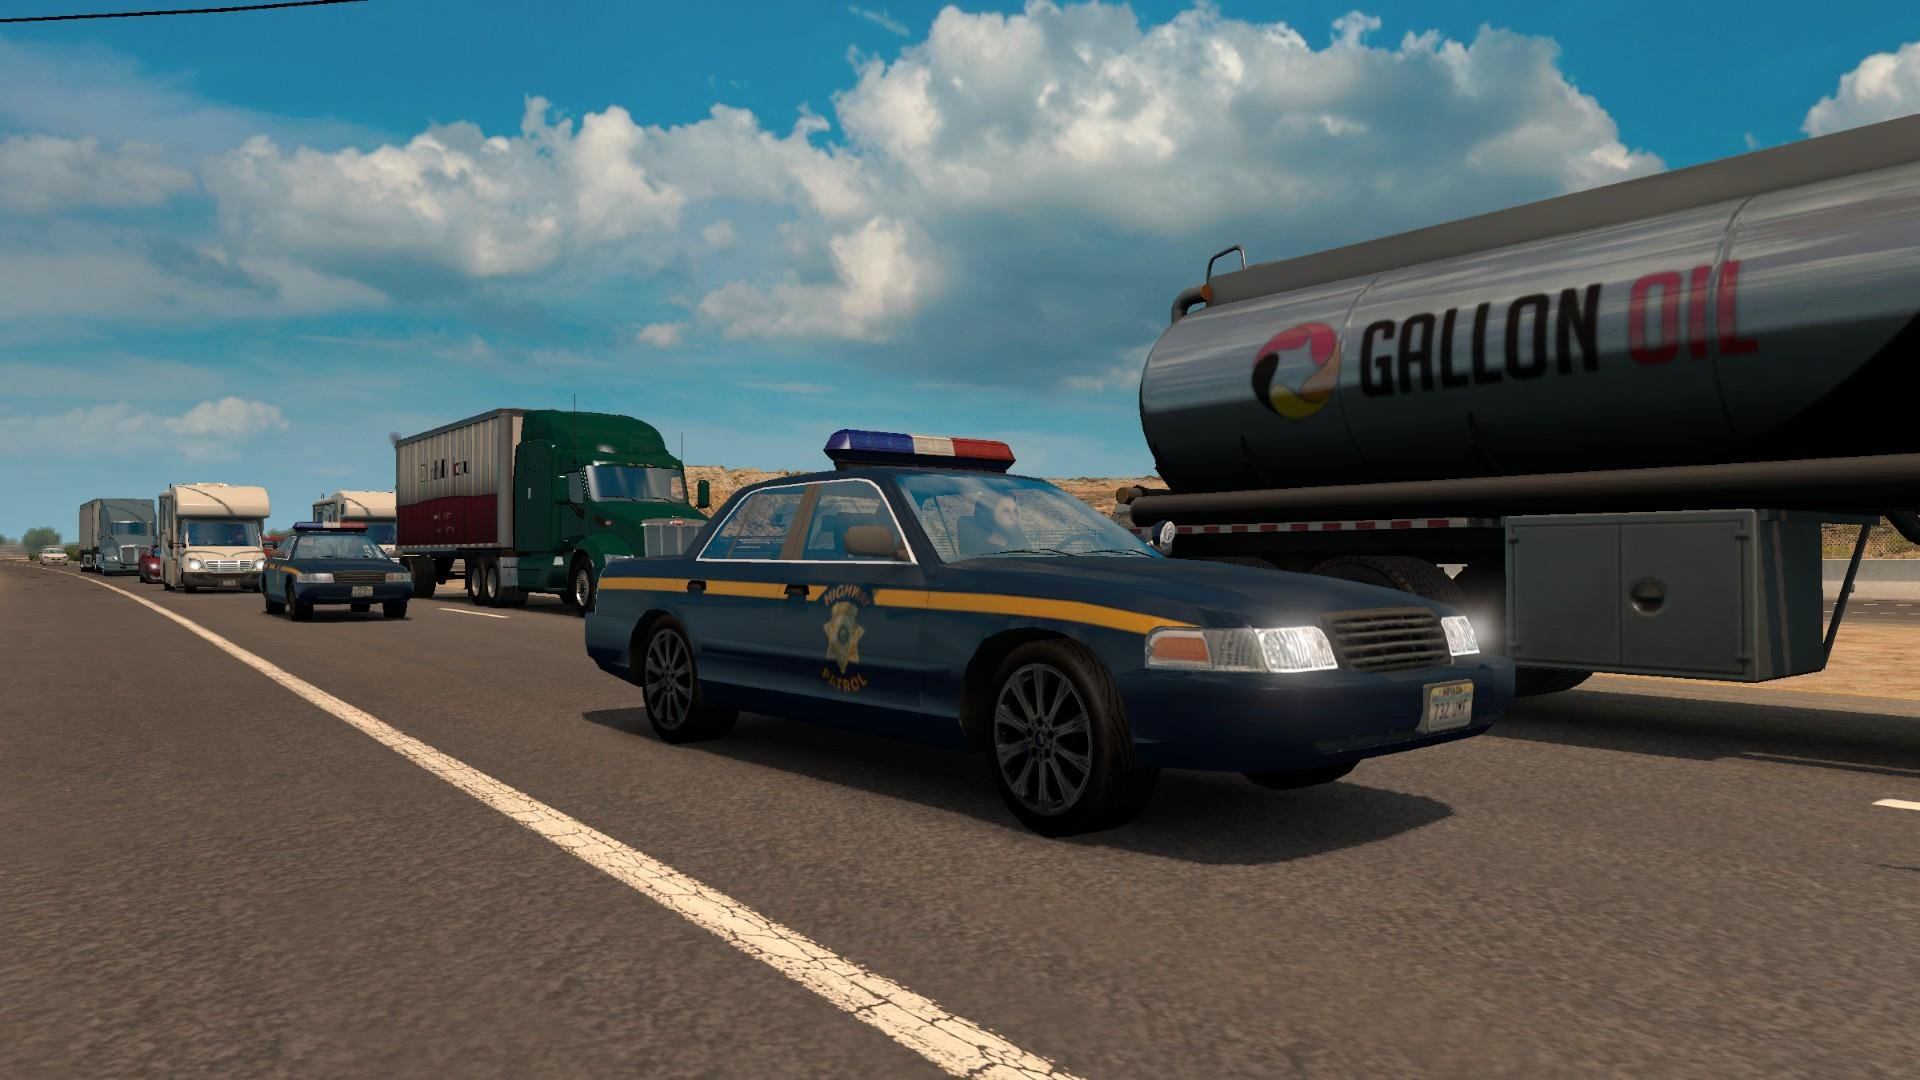 Separate California and Nevada Highway Patrol cars